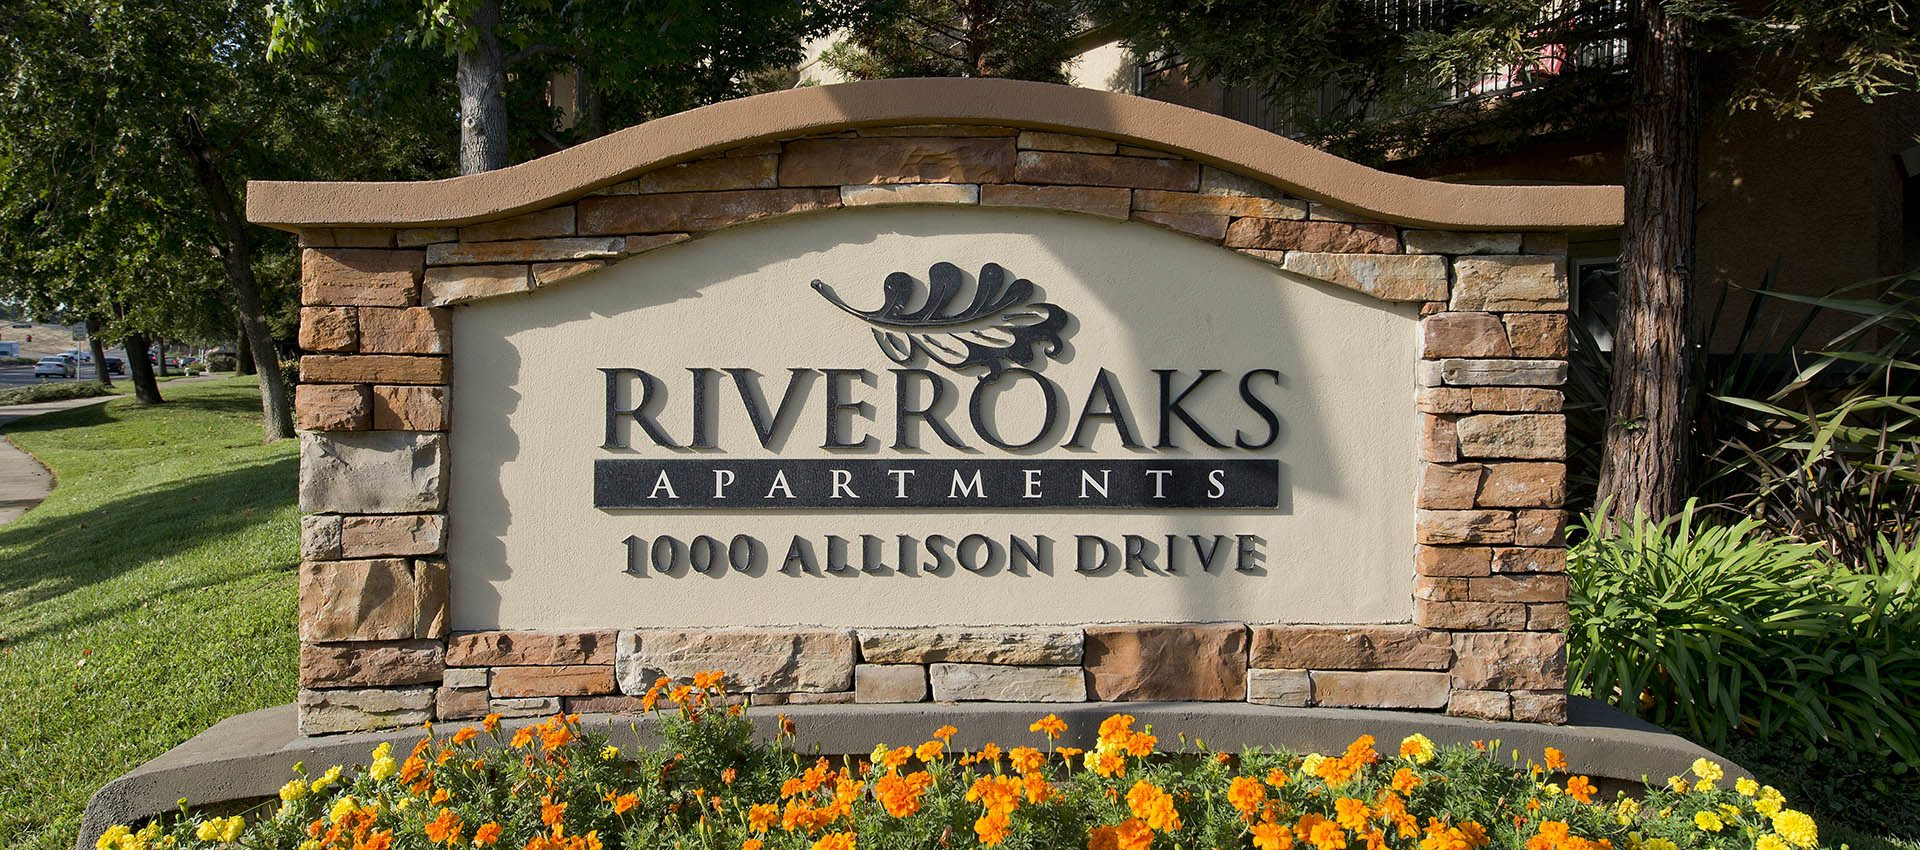 Signage at River Oaks Apartment Homes in Vacaville